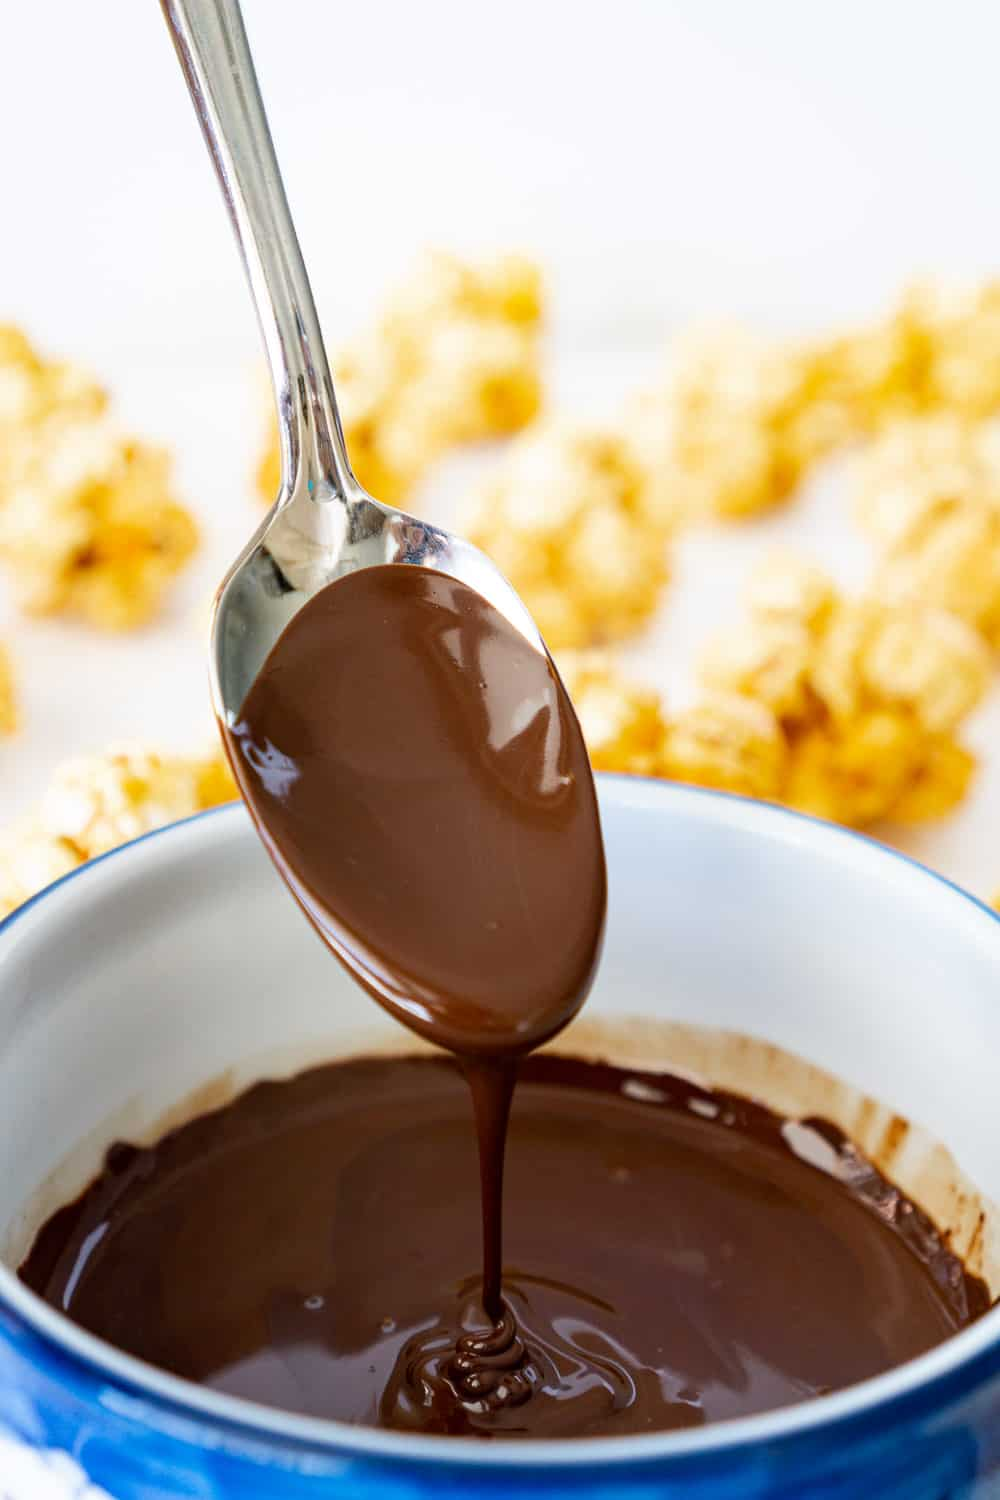 bowl of melted dark chocolate with a spoon, with popcorn balls in the background